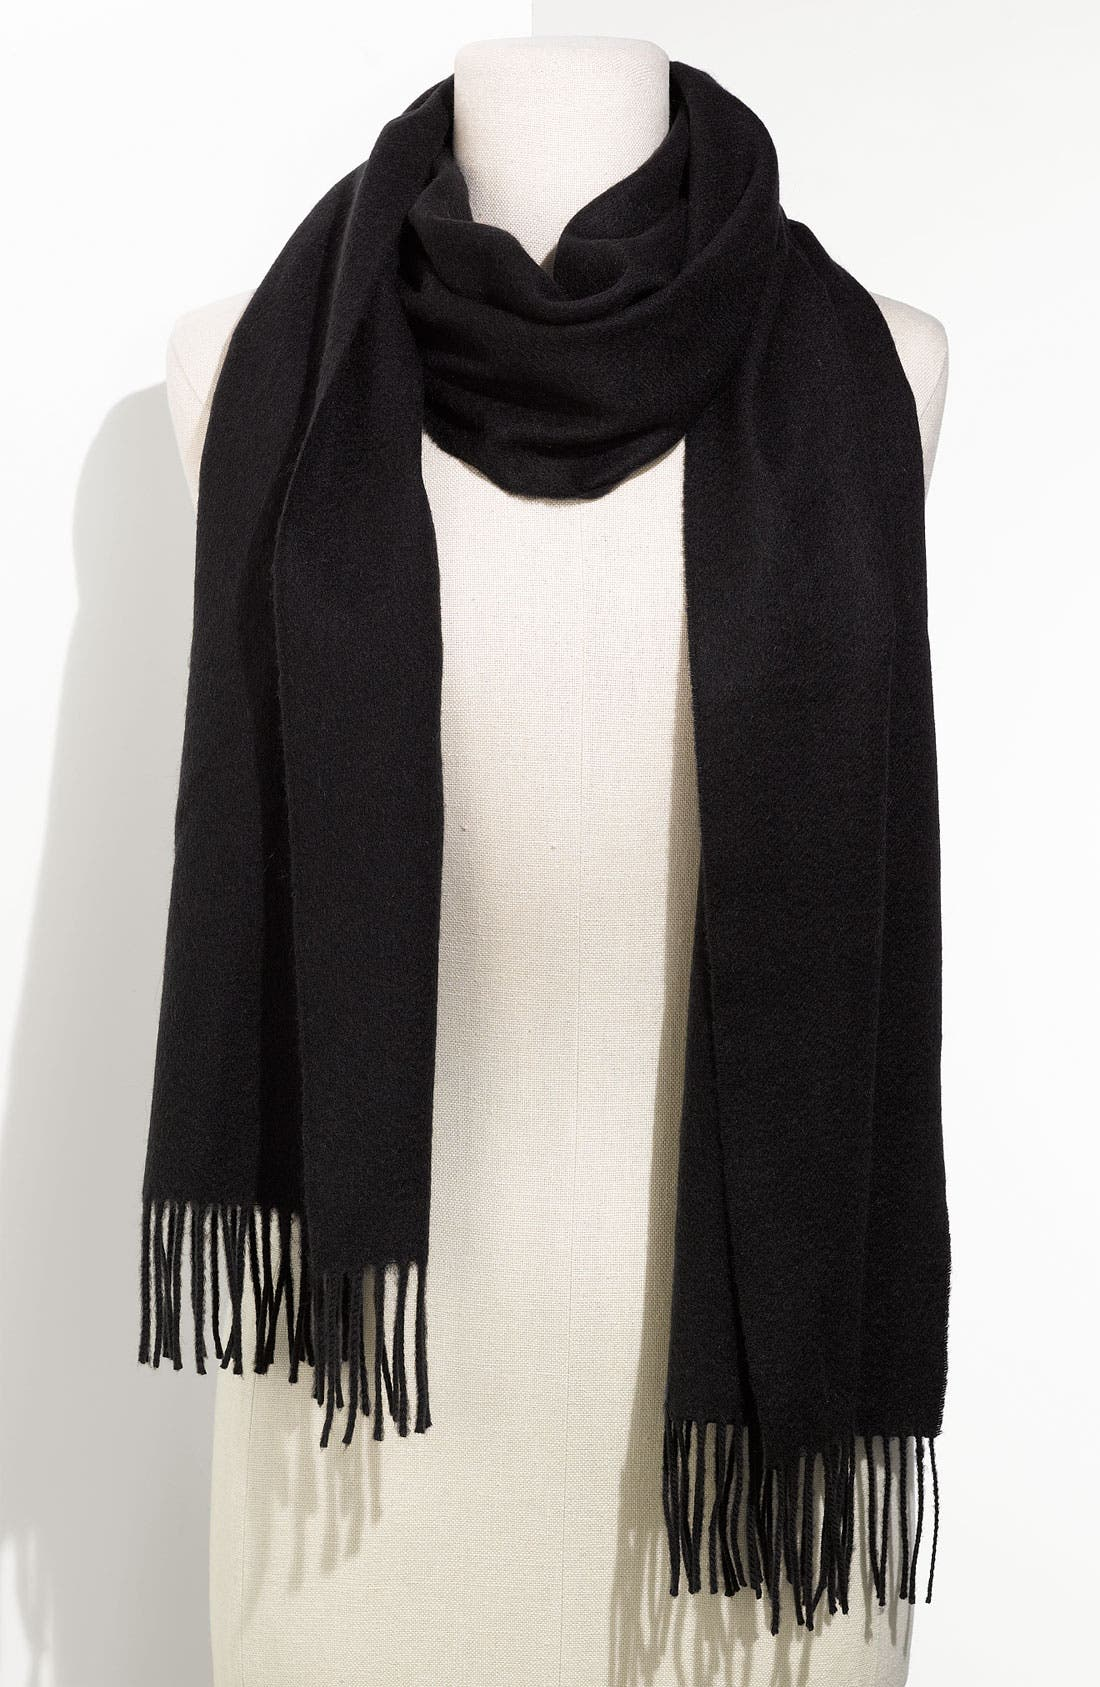 Alternate Image 1 Selected - Burberry Solid Cashmere Muffler